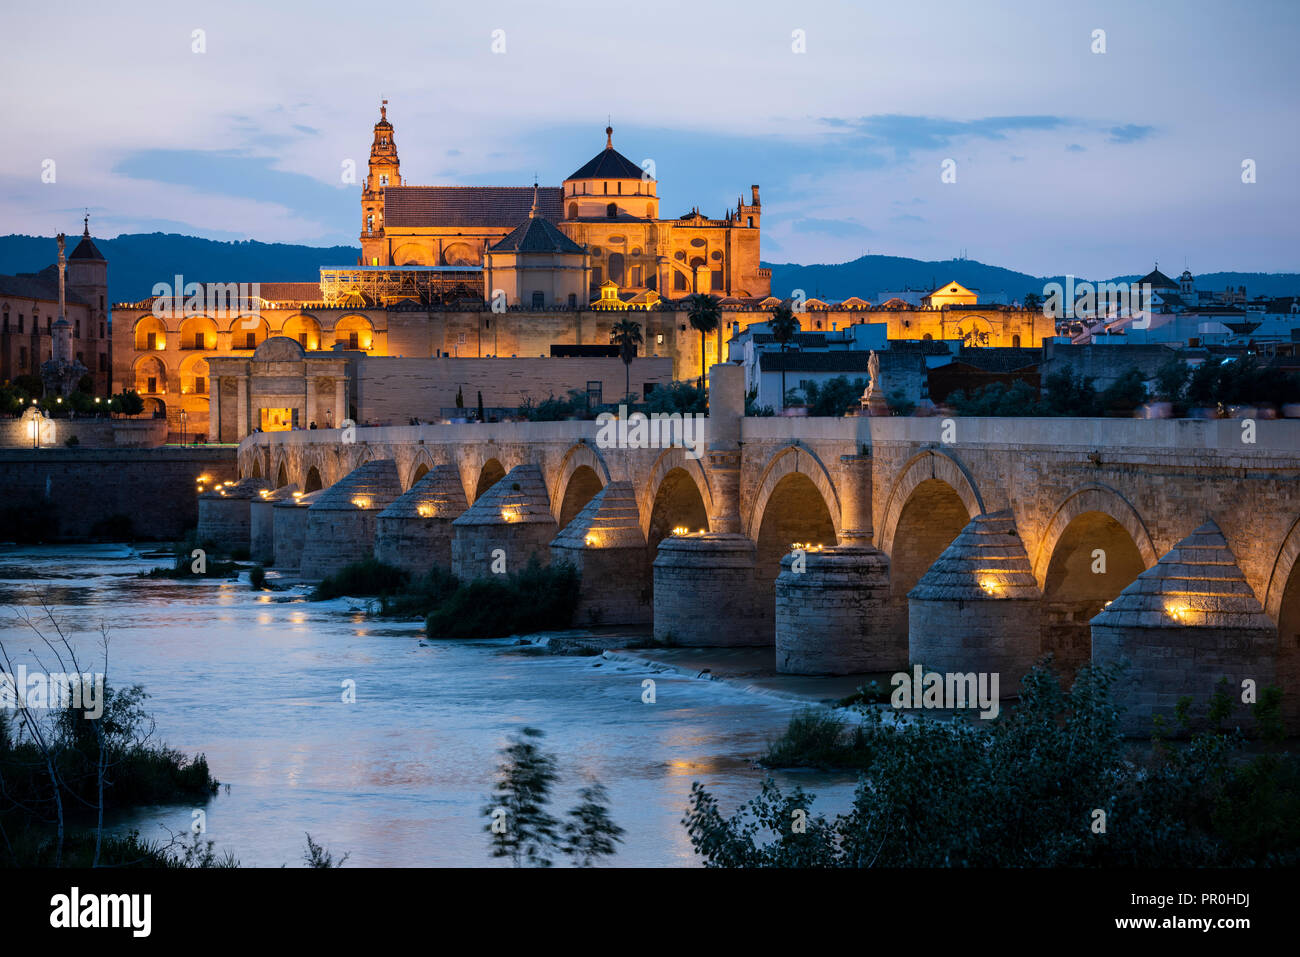 The Cathedral and Great Mosque of Cordoba (Mezquita) and Roman Bridge at twilight, UNESCO World Heritage Site, Cordoba, Andalucia, Spain, Europe Stock Photo